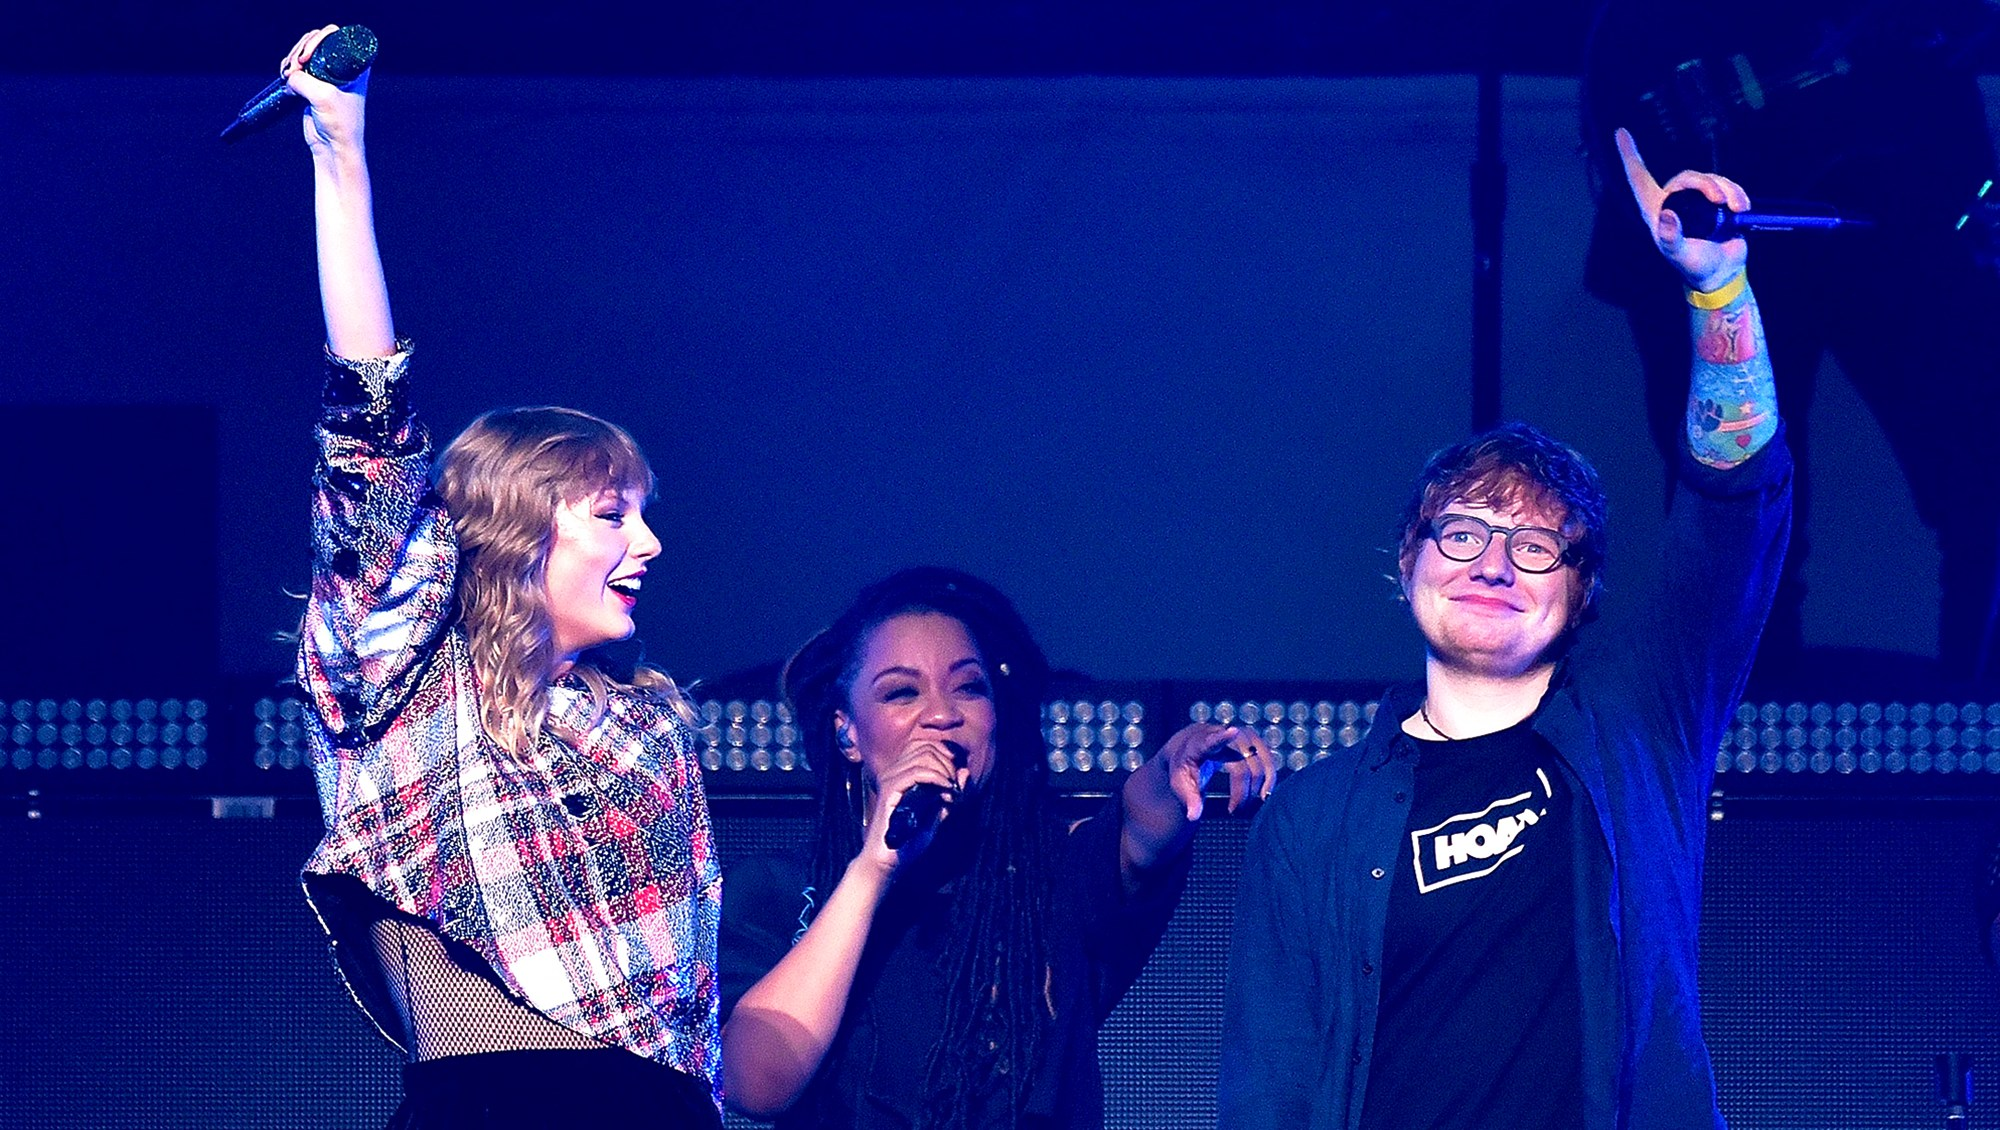 Ed Sheeran joins Taylor Swift onstage during the 99.7 NOW! POPTOPIA 2017 at SAP Center in San Jose, California.